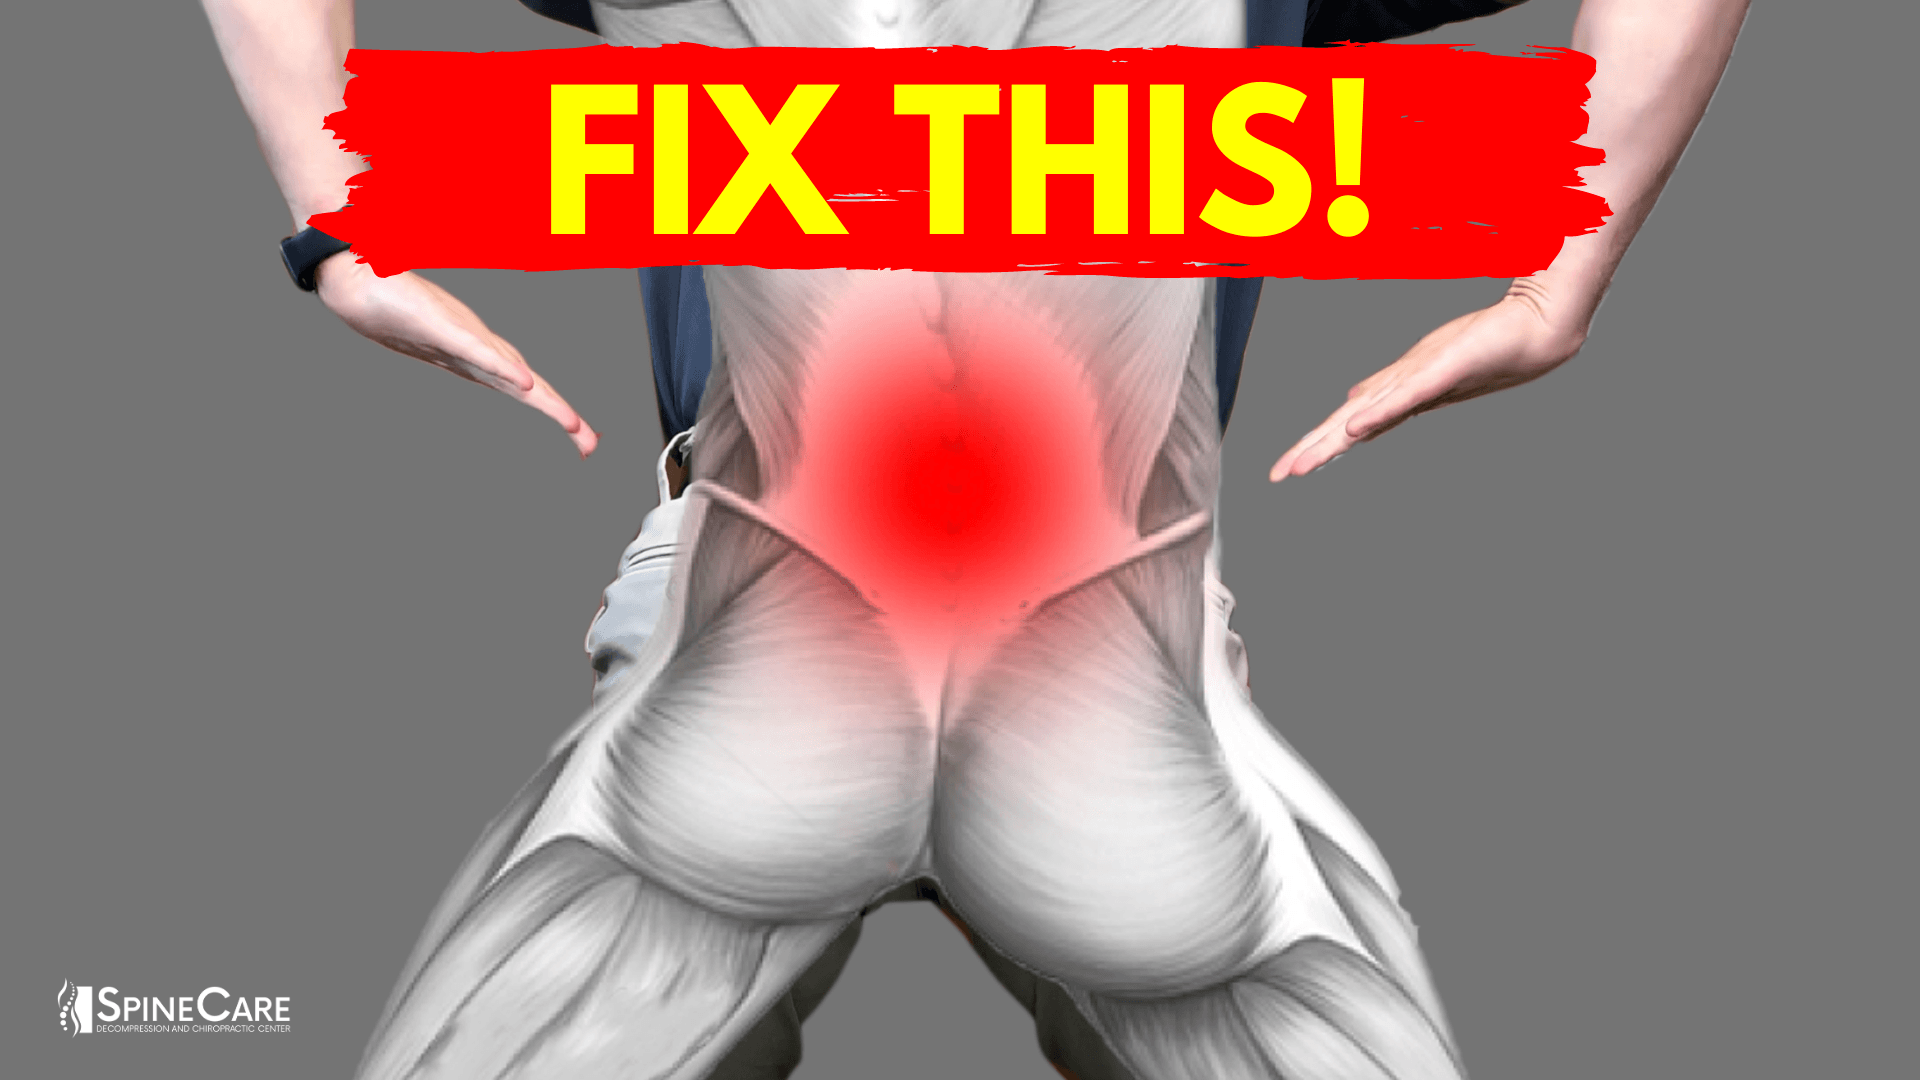 How to Fix a Tight Lower Back in 30 SECONDS | SpineCare | St. Joseph, Michigan Chiropractor